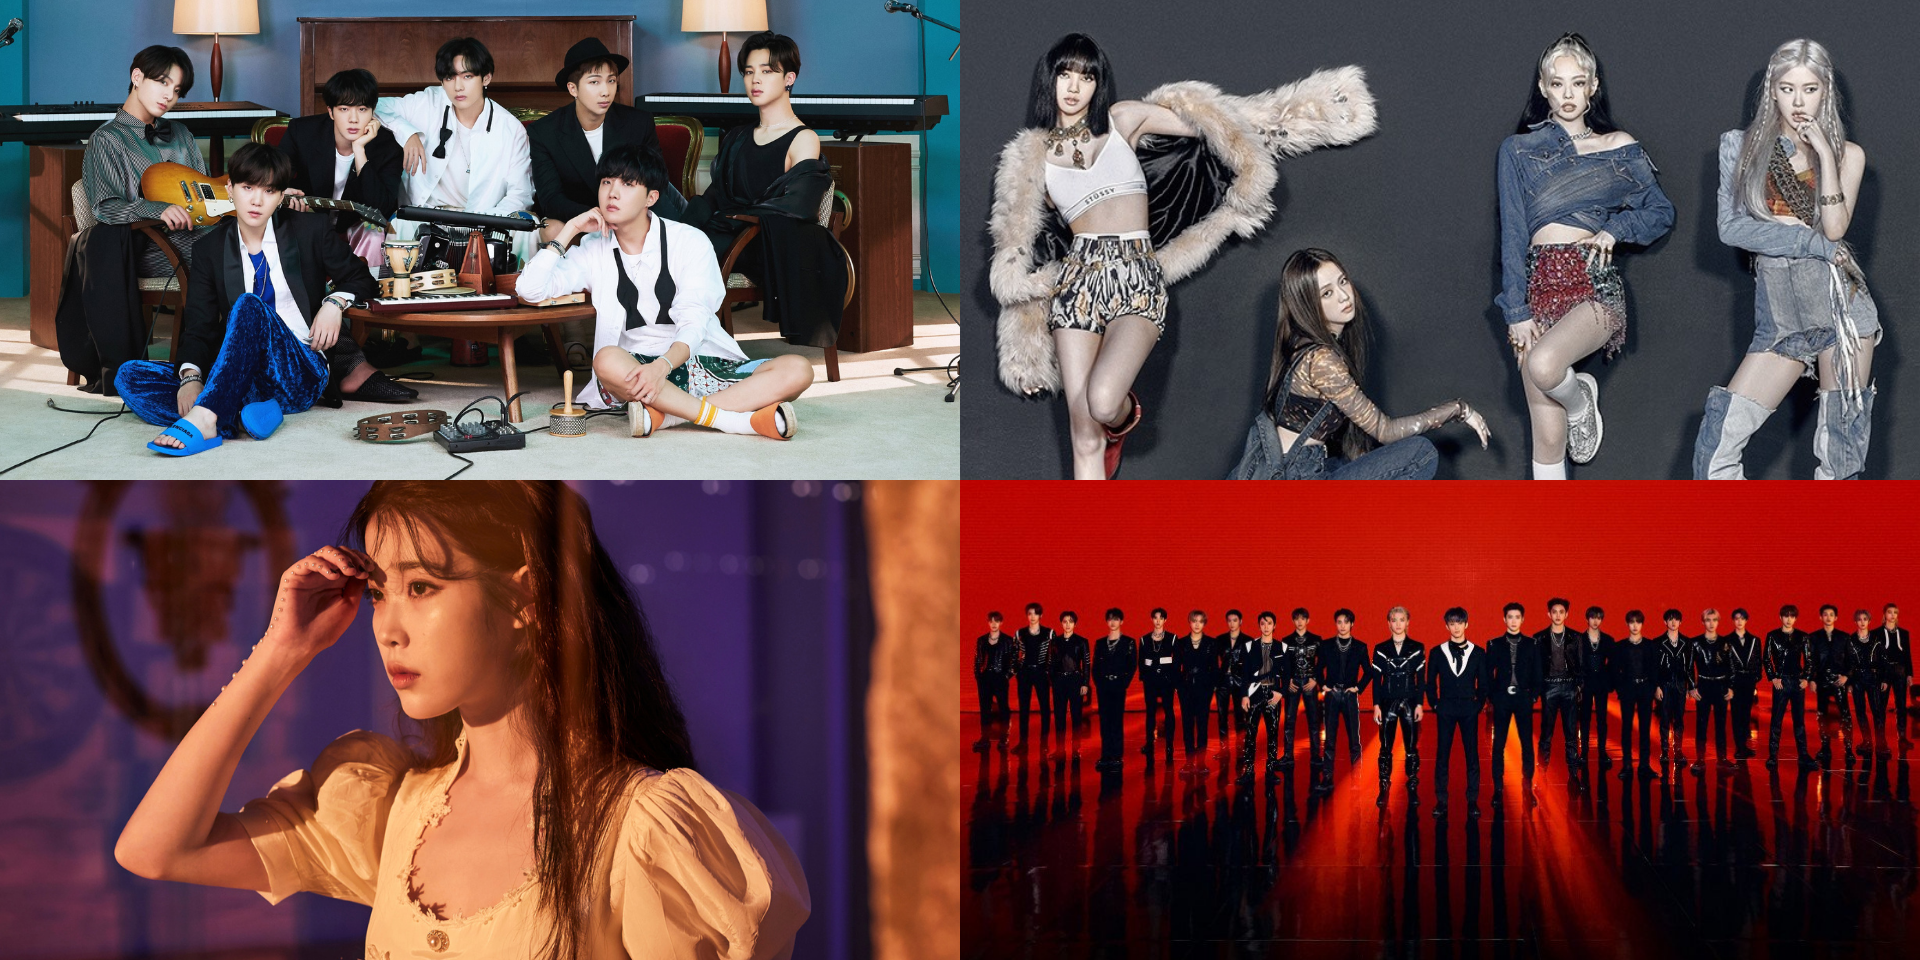 Here are the winners of the 10th Gaon Chart Music Awards – BLACKPINK, BTS, IU, NCT, and more